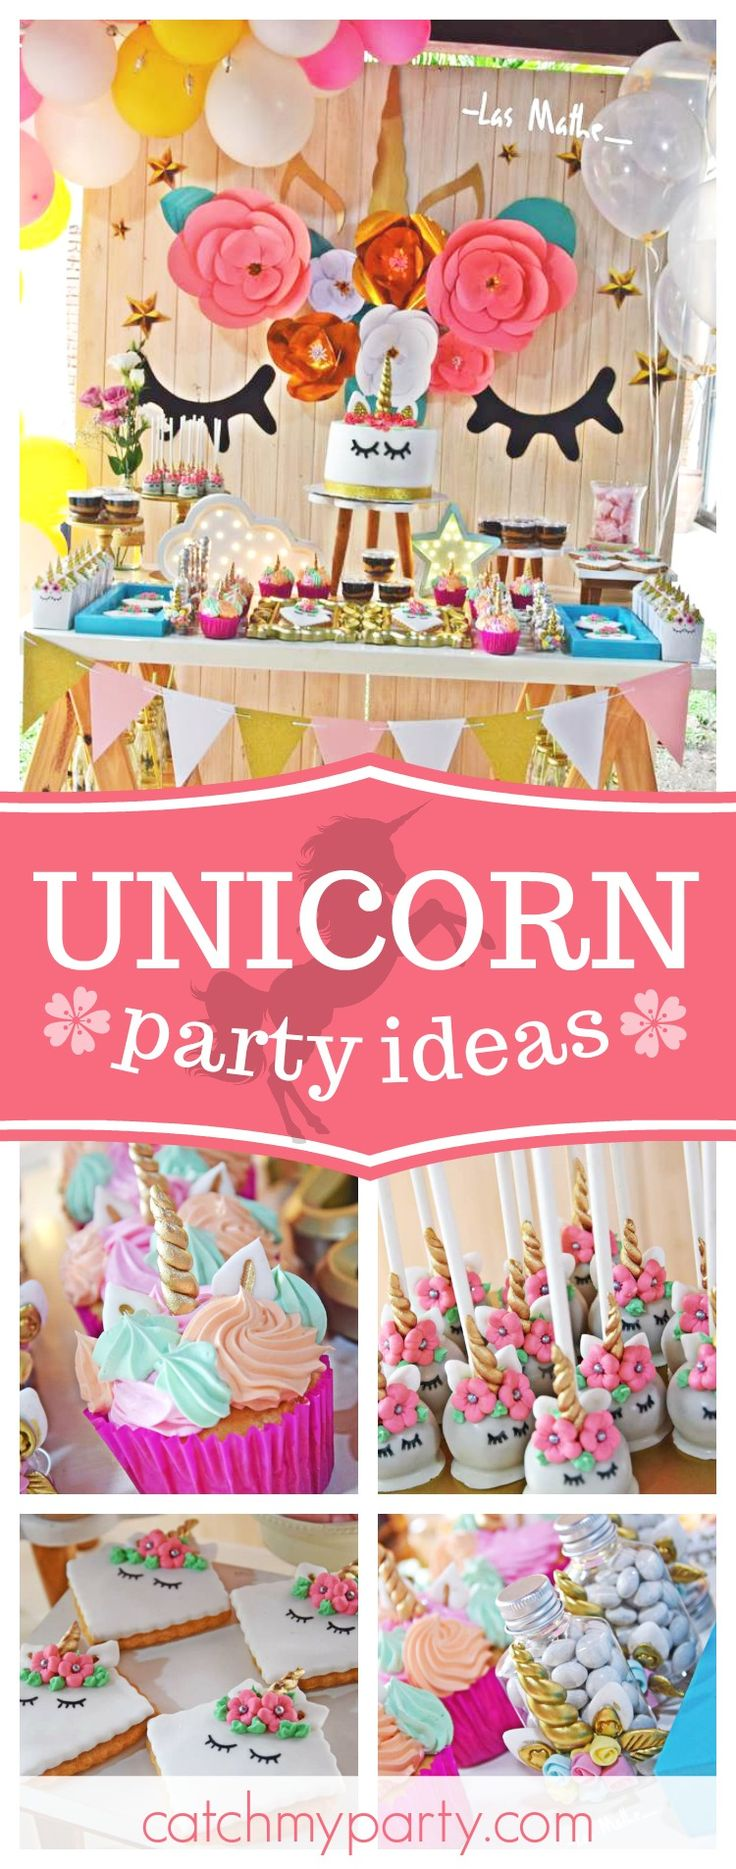 Take a look at this fantastic Unicorn birthday party! The dessert table and backdrop are gorgeous!! See more party ideas and share yours at CatchMyParty.com #unicorn #girlbirthday